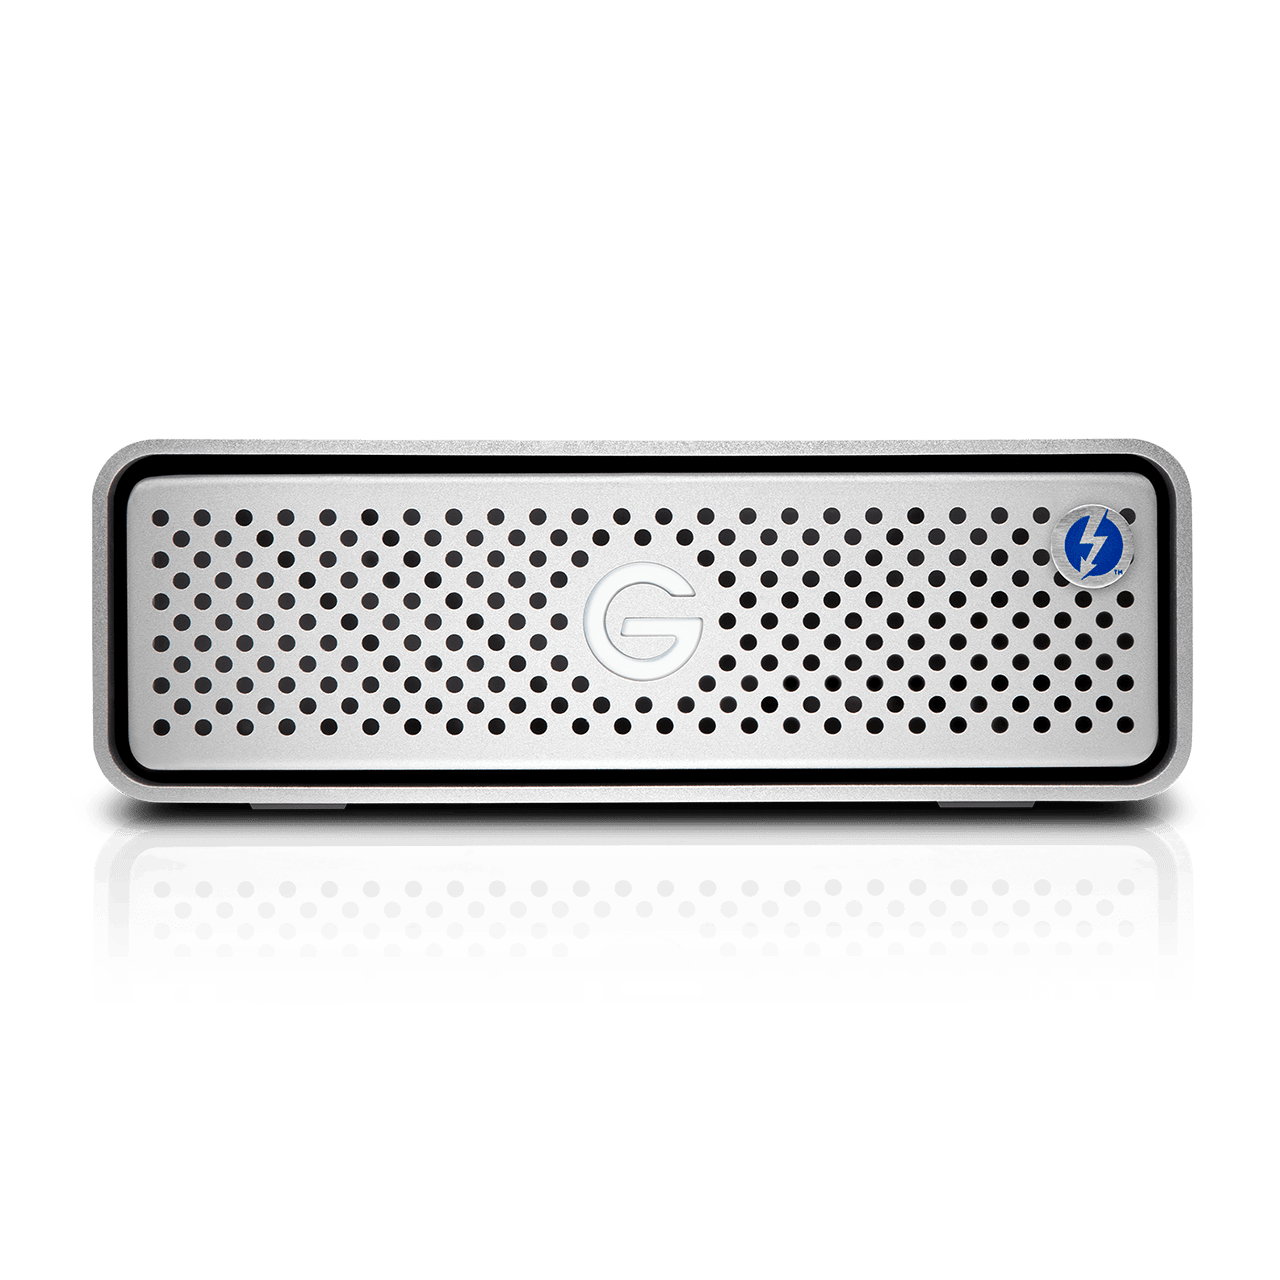 g-drive-with-tb3-front-hr-png-thumb-1280-1280